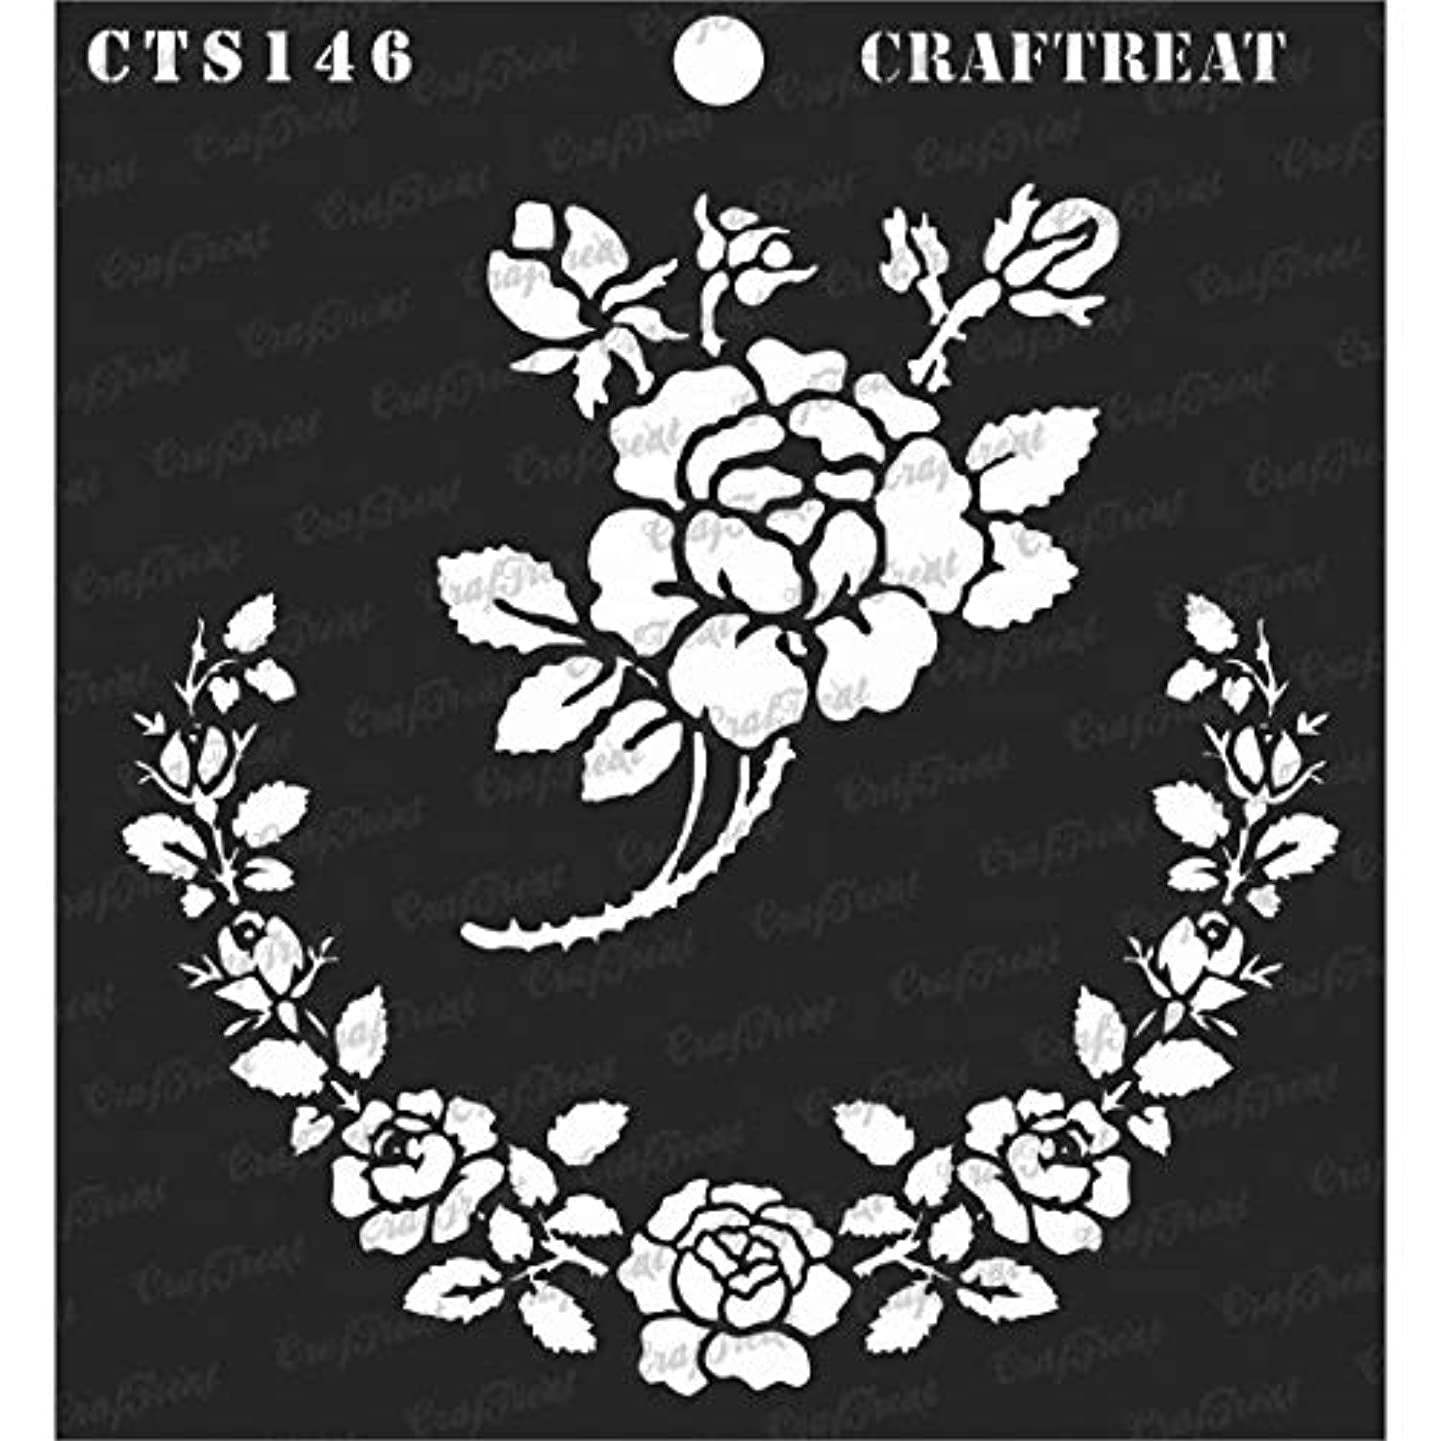 CrafTreat Stencil - Rose Parade | Reusable Painting Template for Journal, Notebook, Home Decor, Crafting, DIY Albums, Scrapbook and Printing on Paper, Floor, Wall, Tile, Fabric, Wood 6